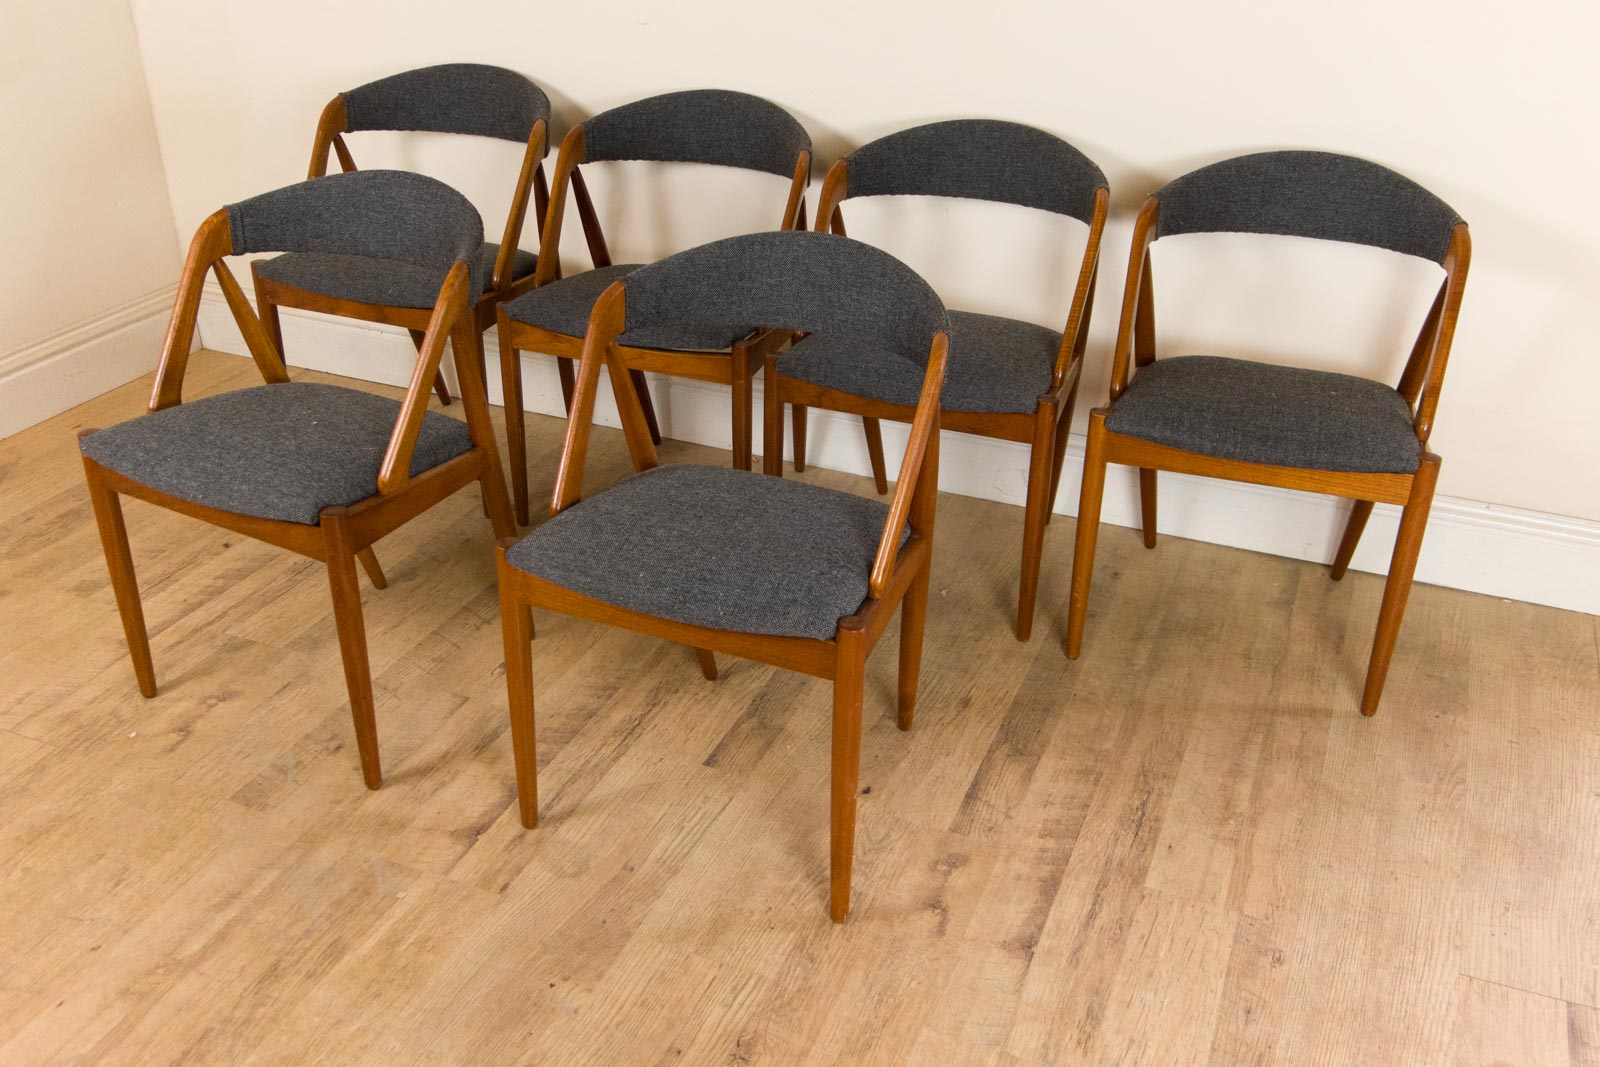 Vintage teak extendable round dining table and 4 kai kristiansen chairs danish - Round teak table and chairs ...